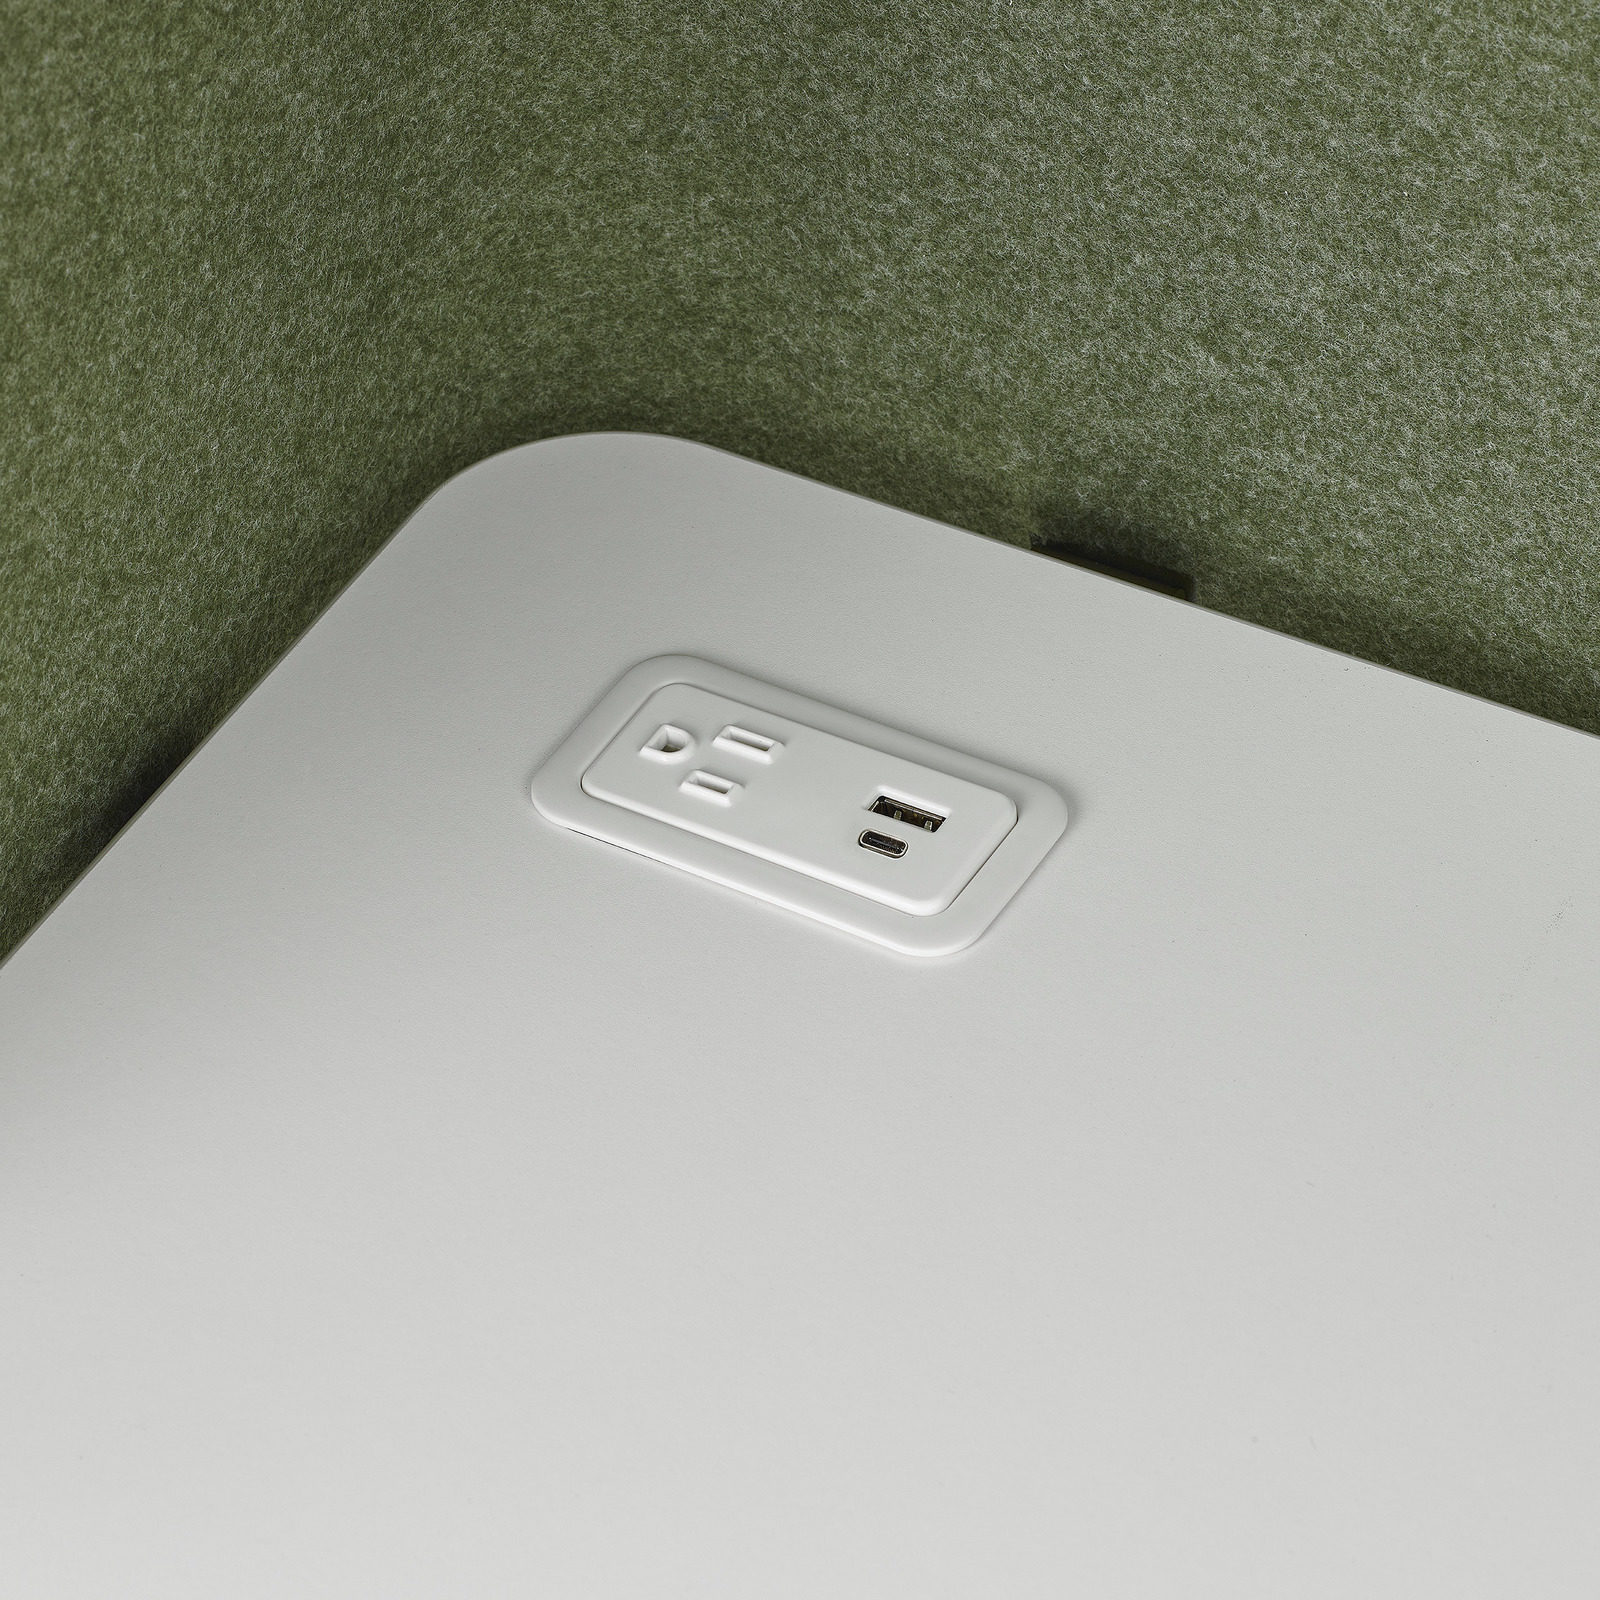 A close up image of an integrated surface power outlet with two usb ports and a simplex receptacle on a white work surface surrounded by a green screen.